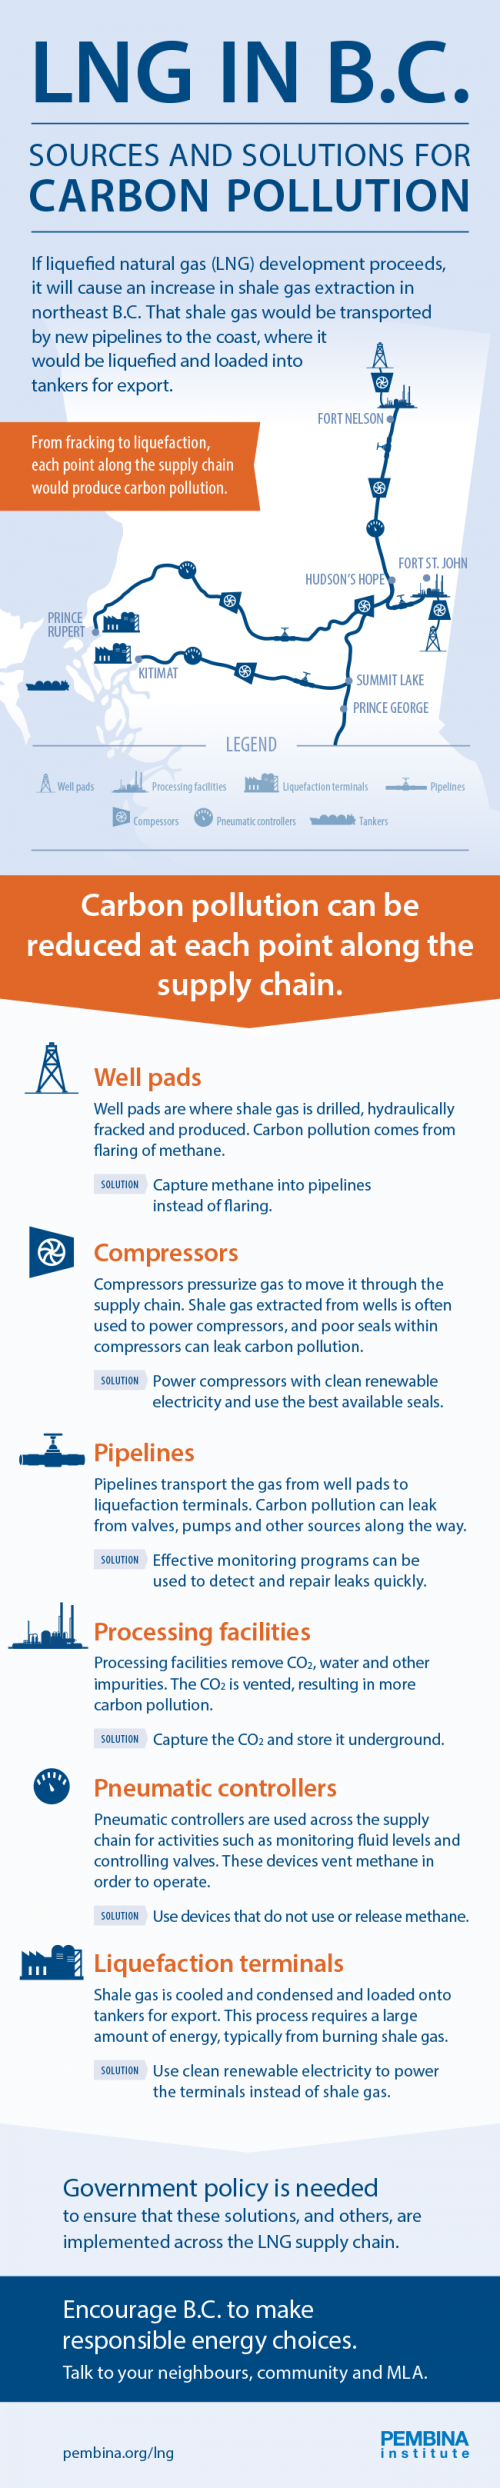 LNG supply chain infographic